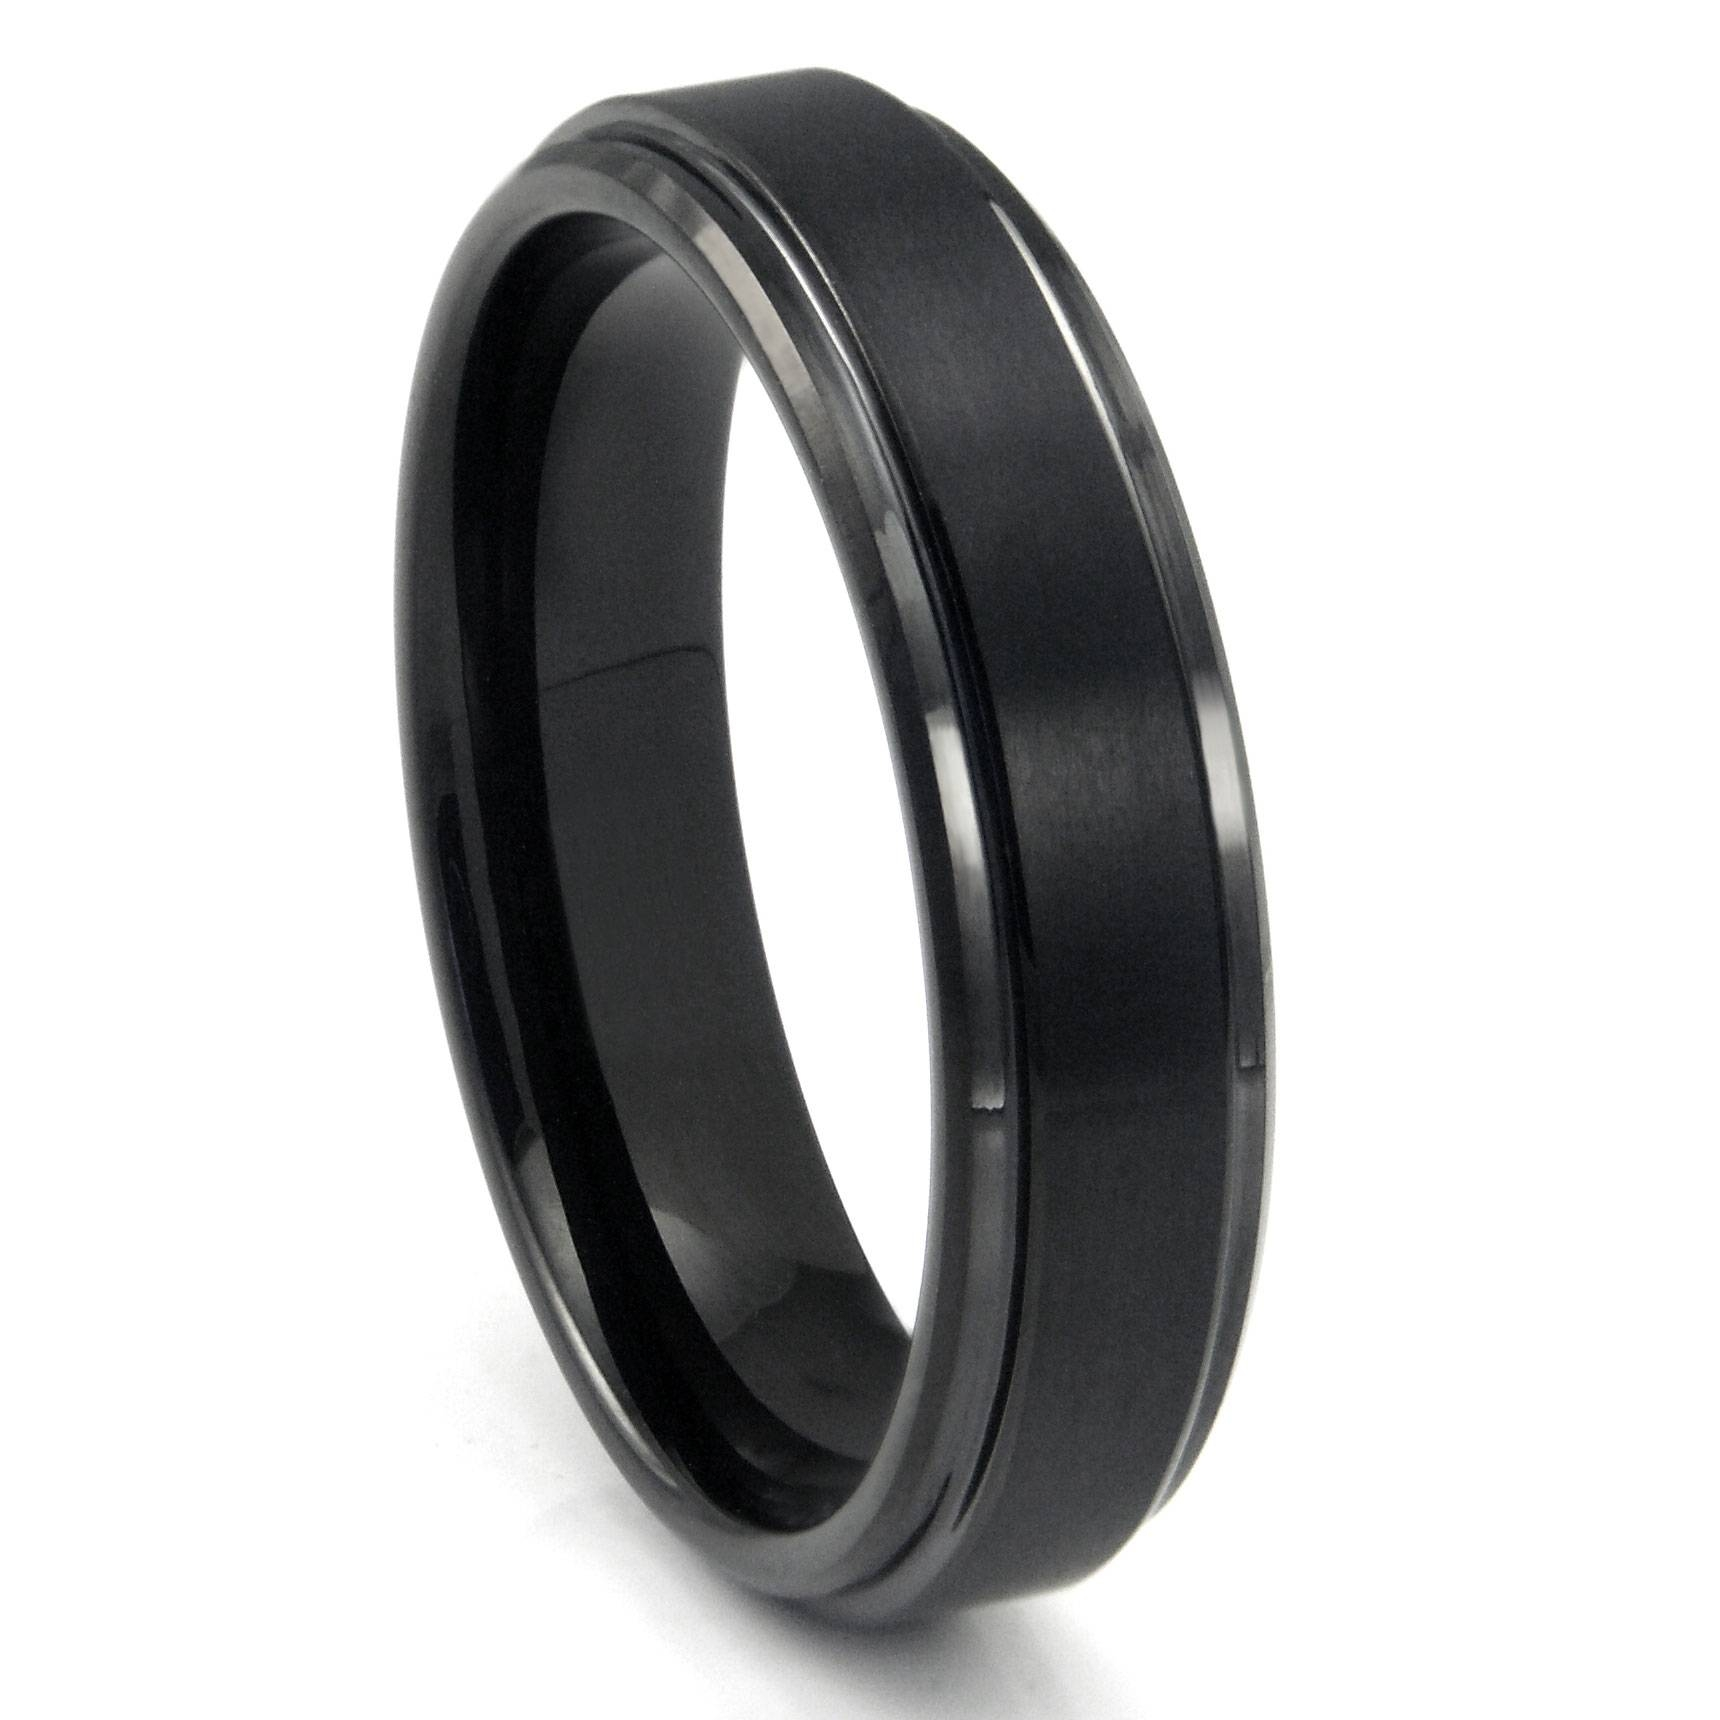 Black Tungsten Rings Mens Wedding Jewelry – Titanium Kay Intended For Military Wedding Bands (View 3 of 15)